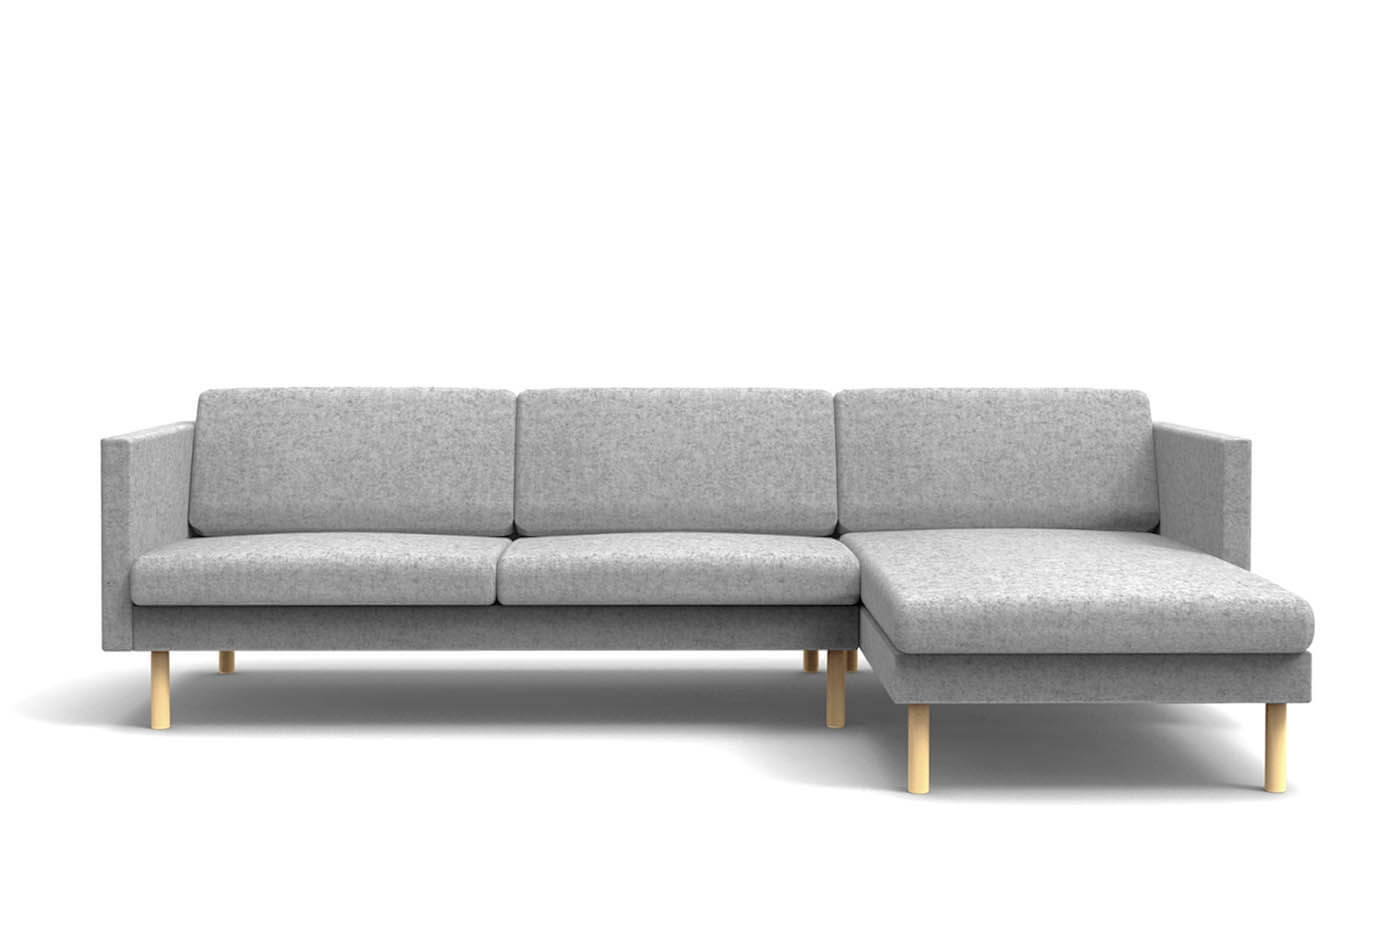 Sofa Chaise Lounges Regarding Most Recently Released Leaf Sofa Chaise Lounge Left – Oot Oot Studio (View 3 of 15)